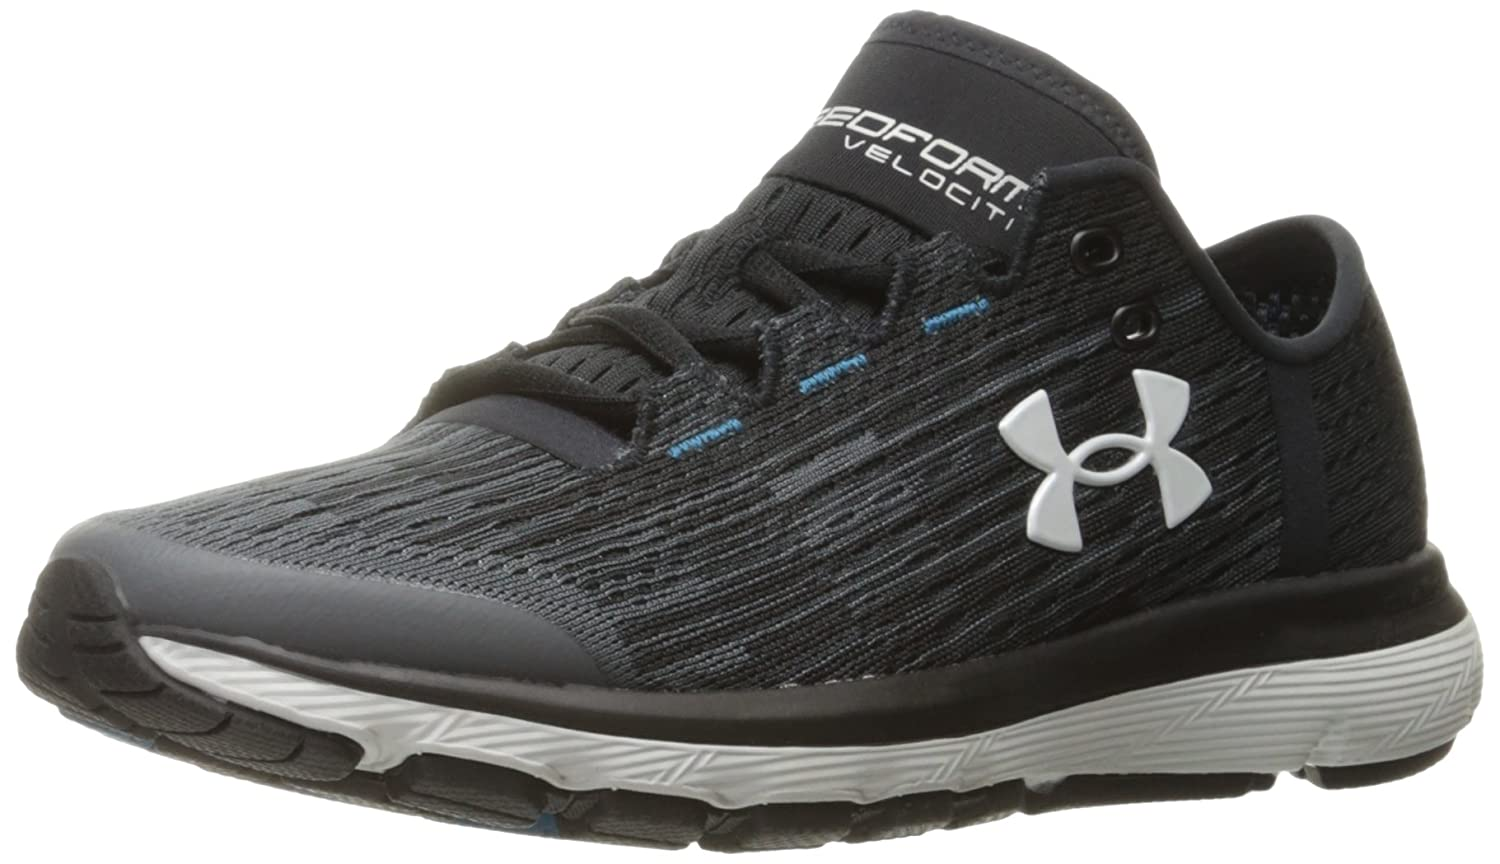 Under Armour Women's Speedform Velociti Graphic Running Shoe B01NBJILIV 5.5 M US|Rhino Gray (100)/Black